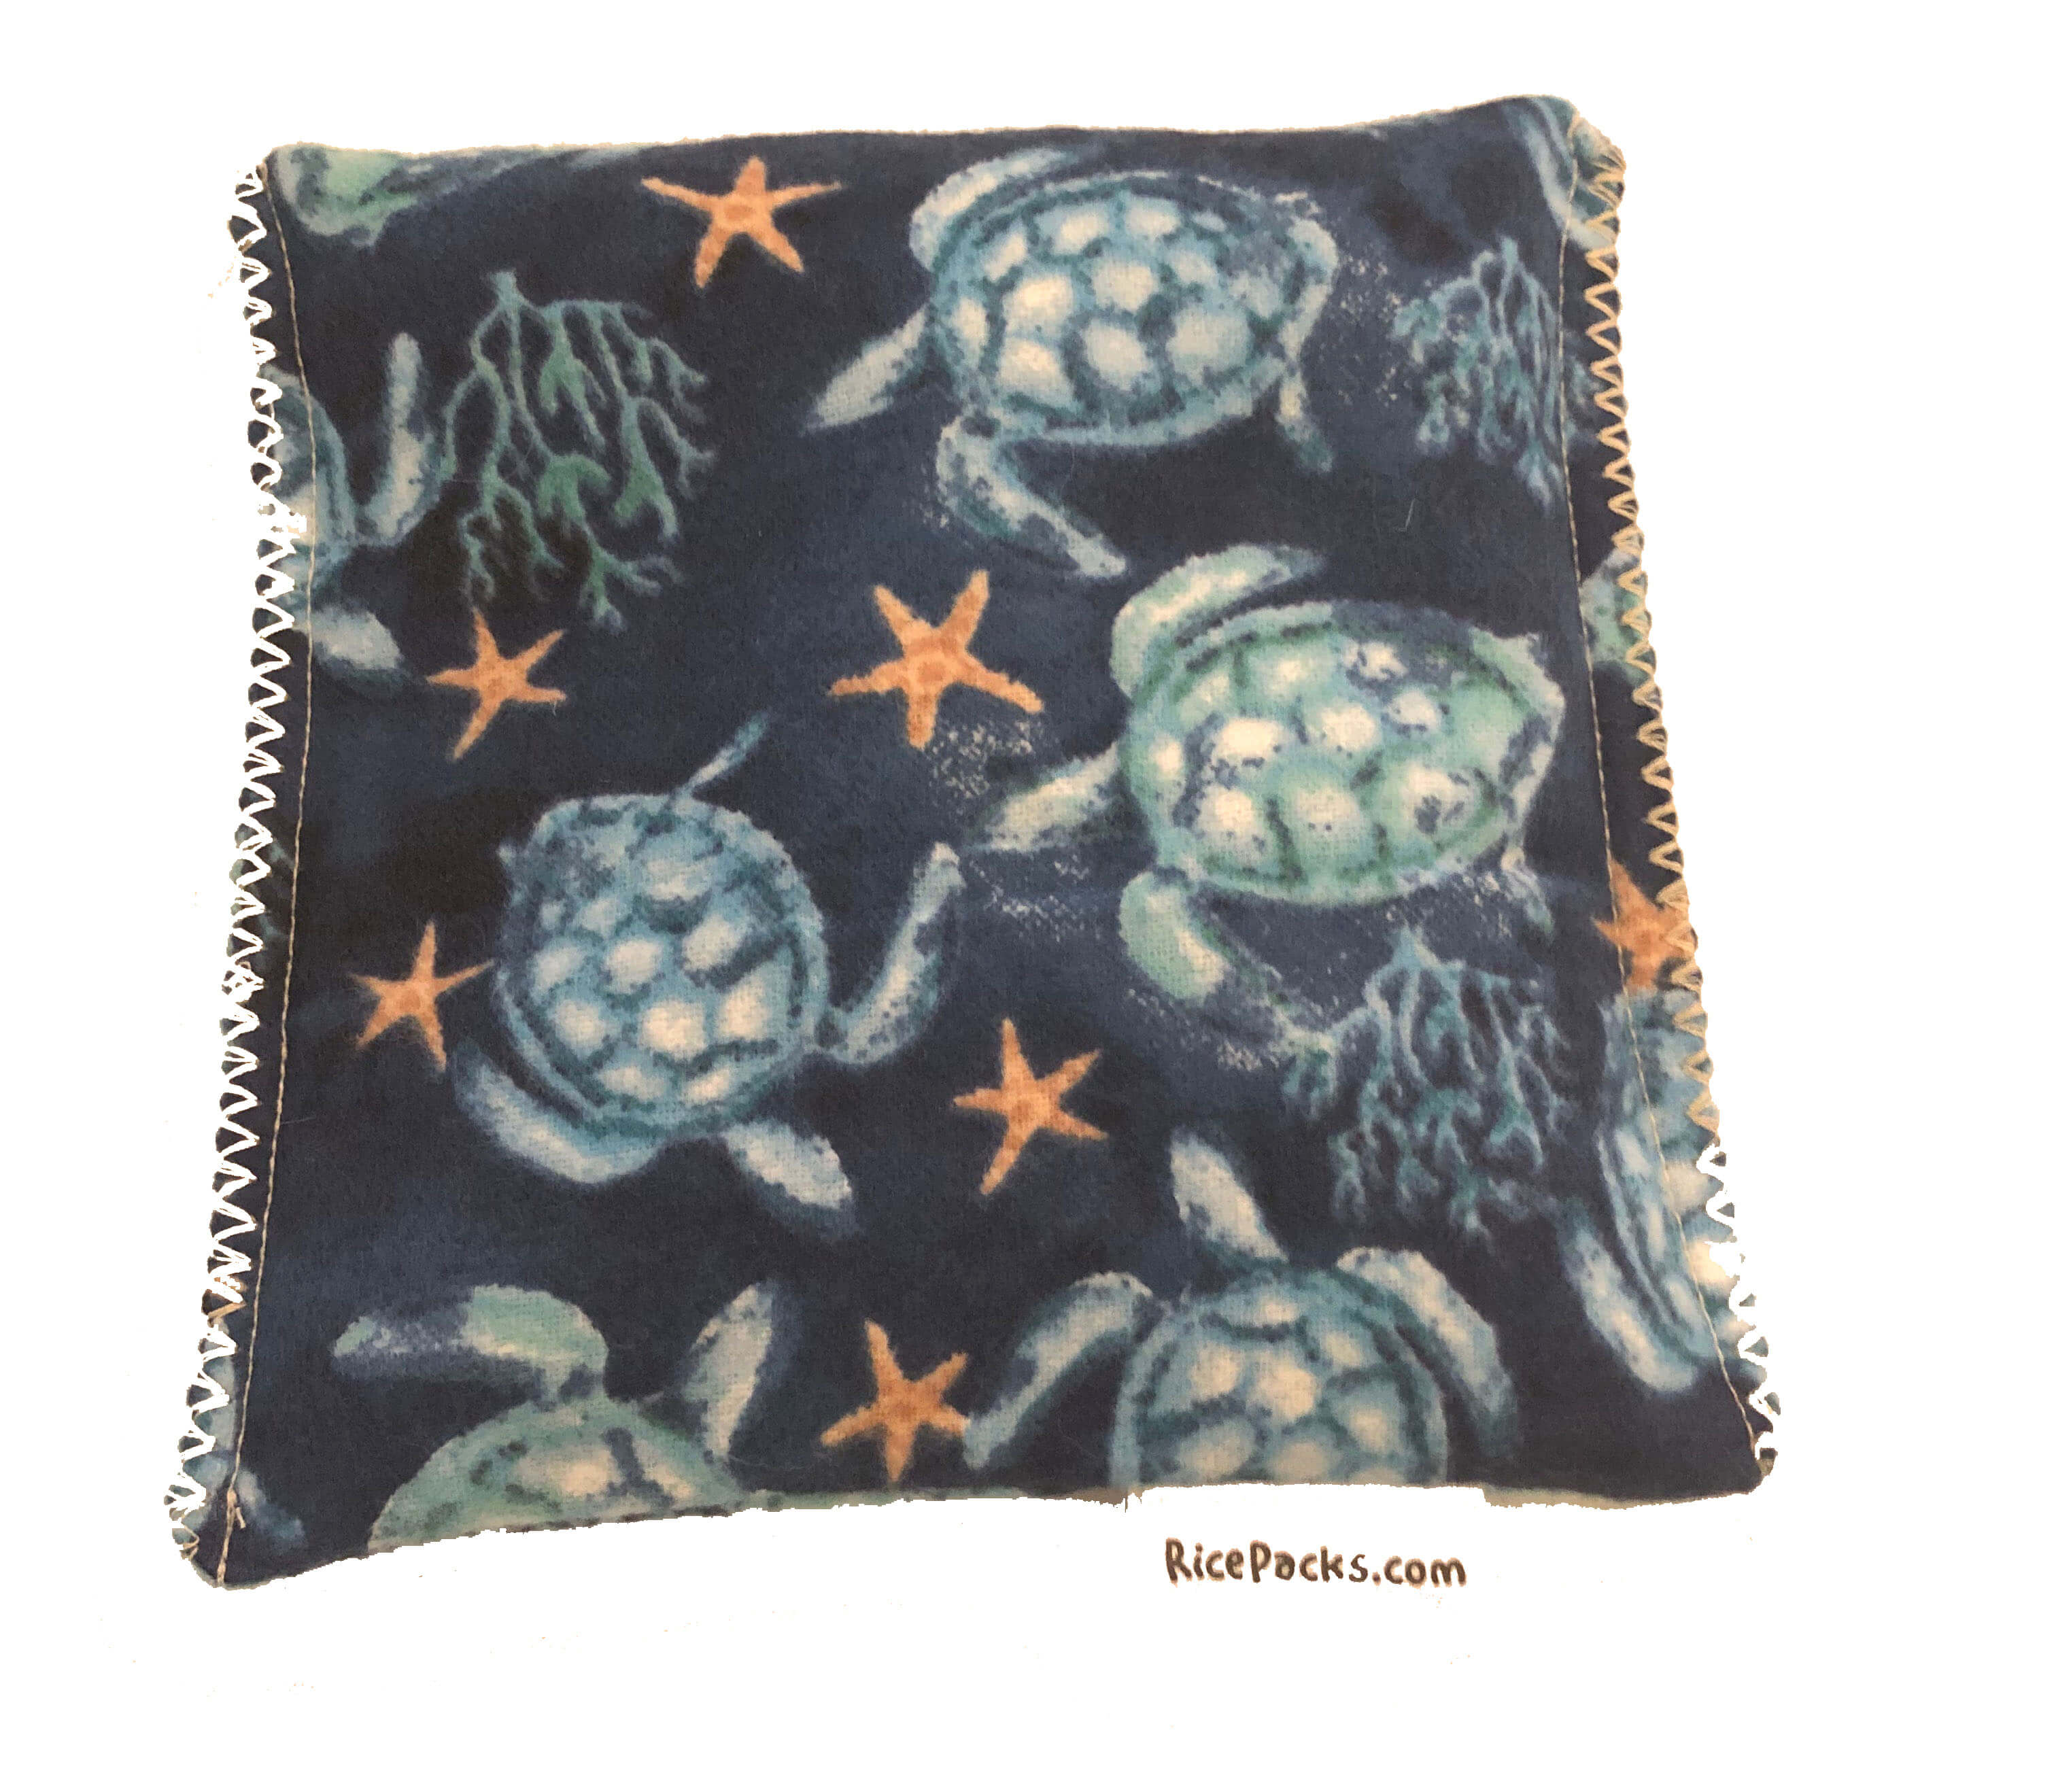 Teal Sea Turtles Hot/Cold Packs 44 Scents to Choose From Reusable Hot-Cold Packs Ouchee Heat Packs BooBoo Small Rice Pack